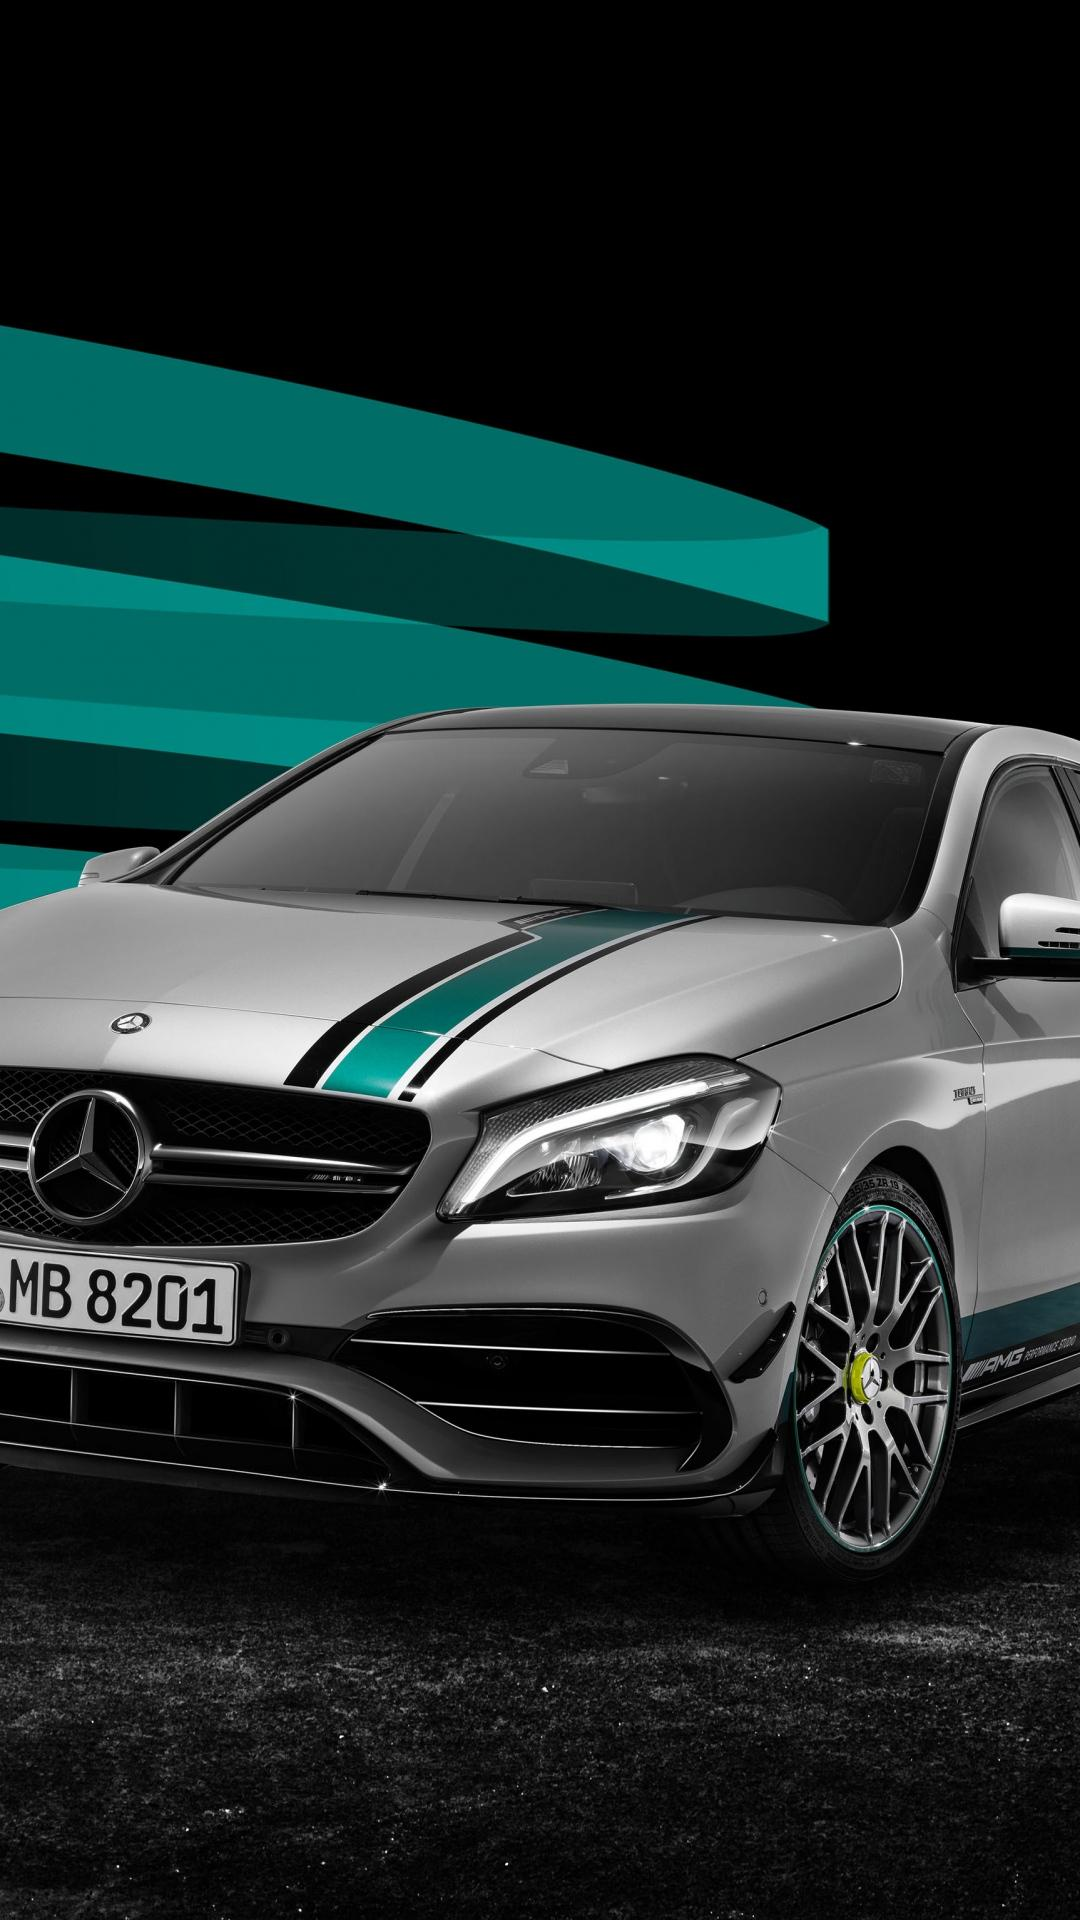 Mercedes Android Wallpapers - Wallpaper Cave